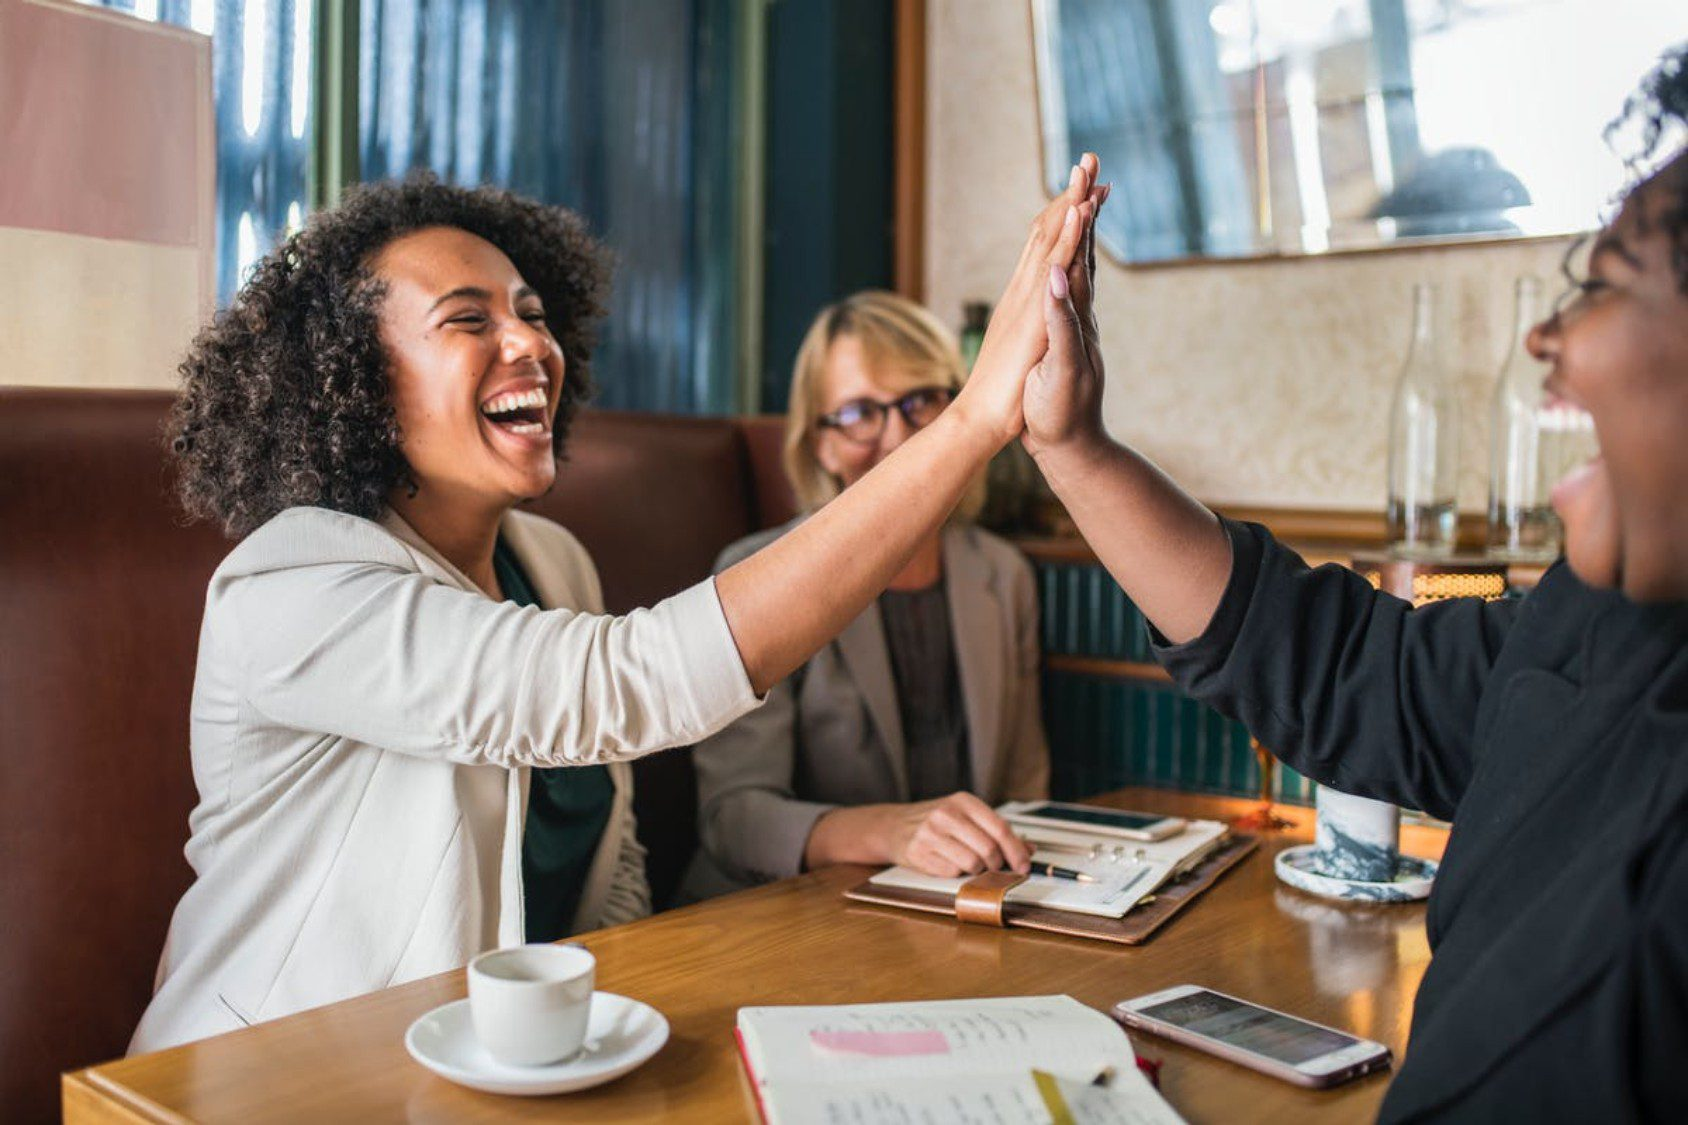 HR leaders happily communicate within their meeting